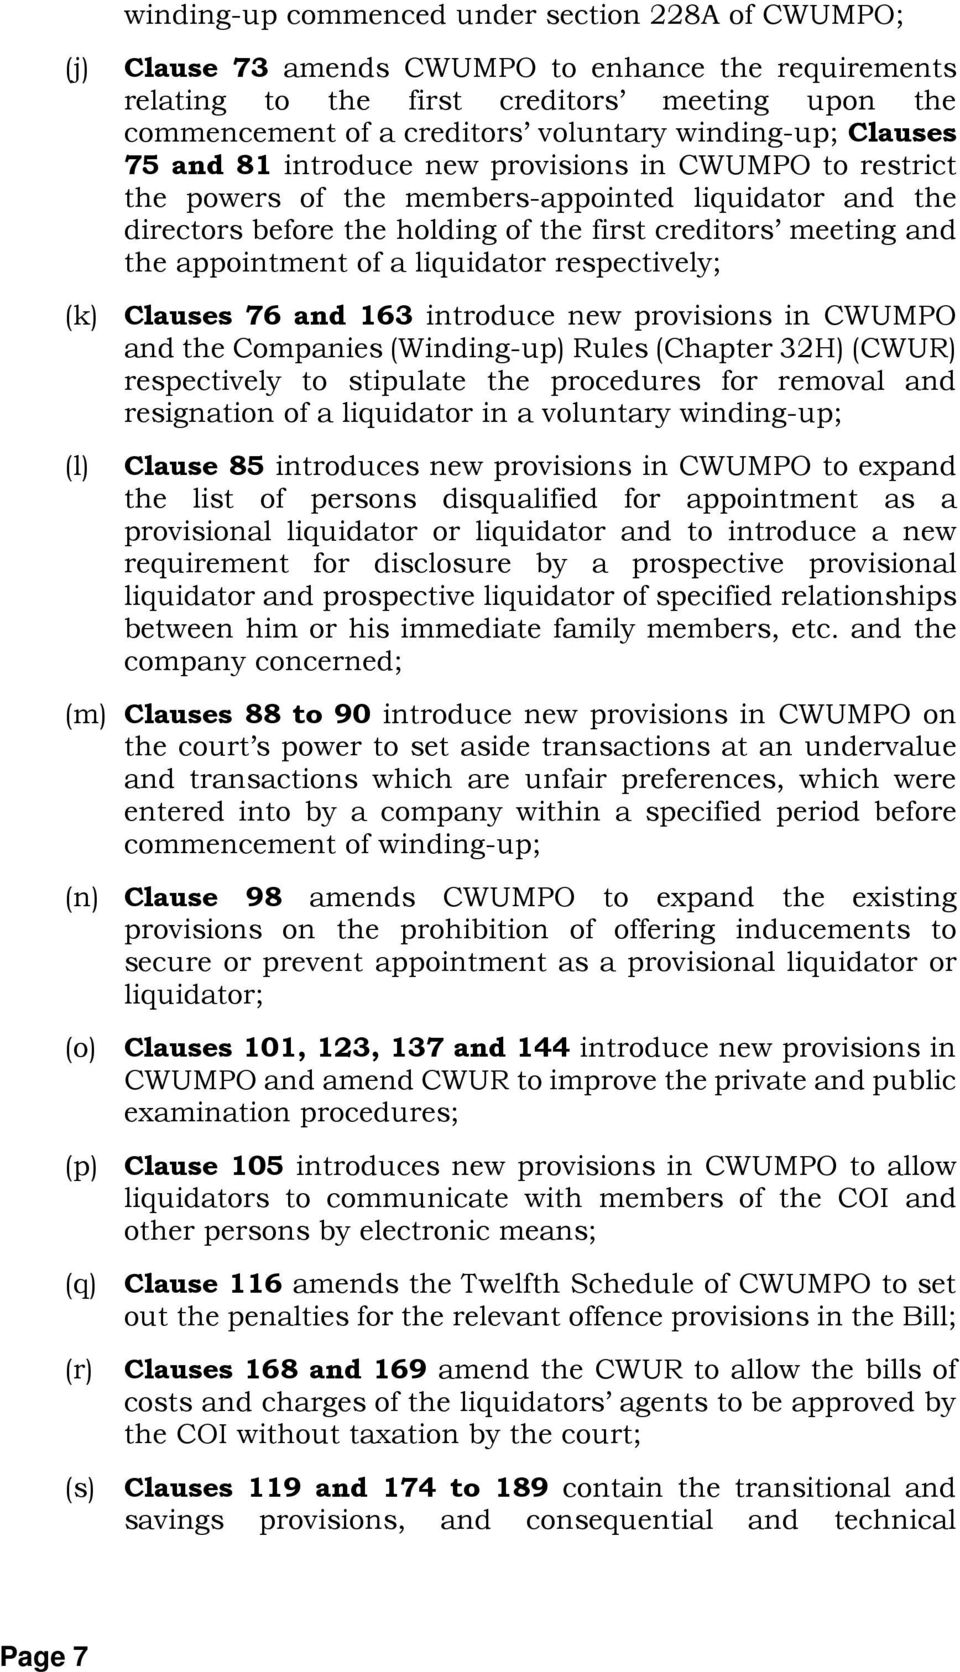 appointment of a liquidator respectively; (k) Clauses 76 and 163 introduce new provisions in CWUMPO and the Companies (Winding-up) Rules (Chapter 32H) (CWUR) respectively to stipulate the procedures